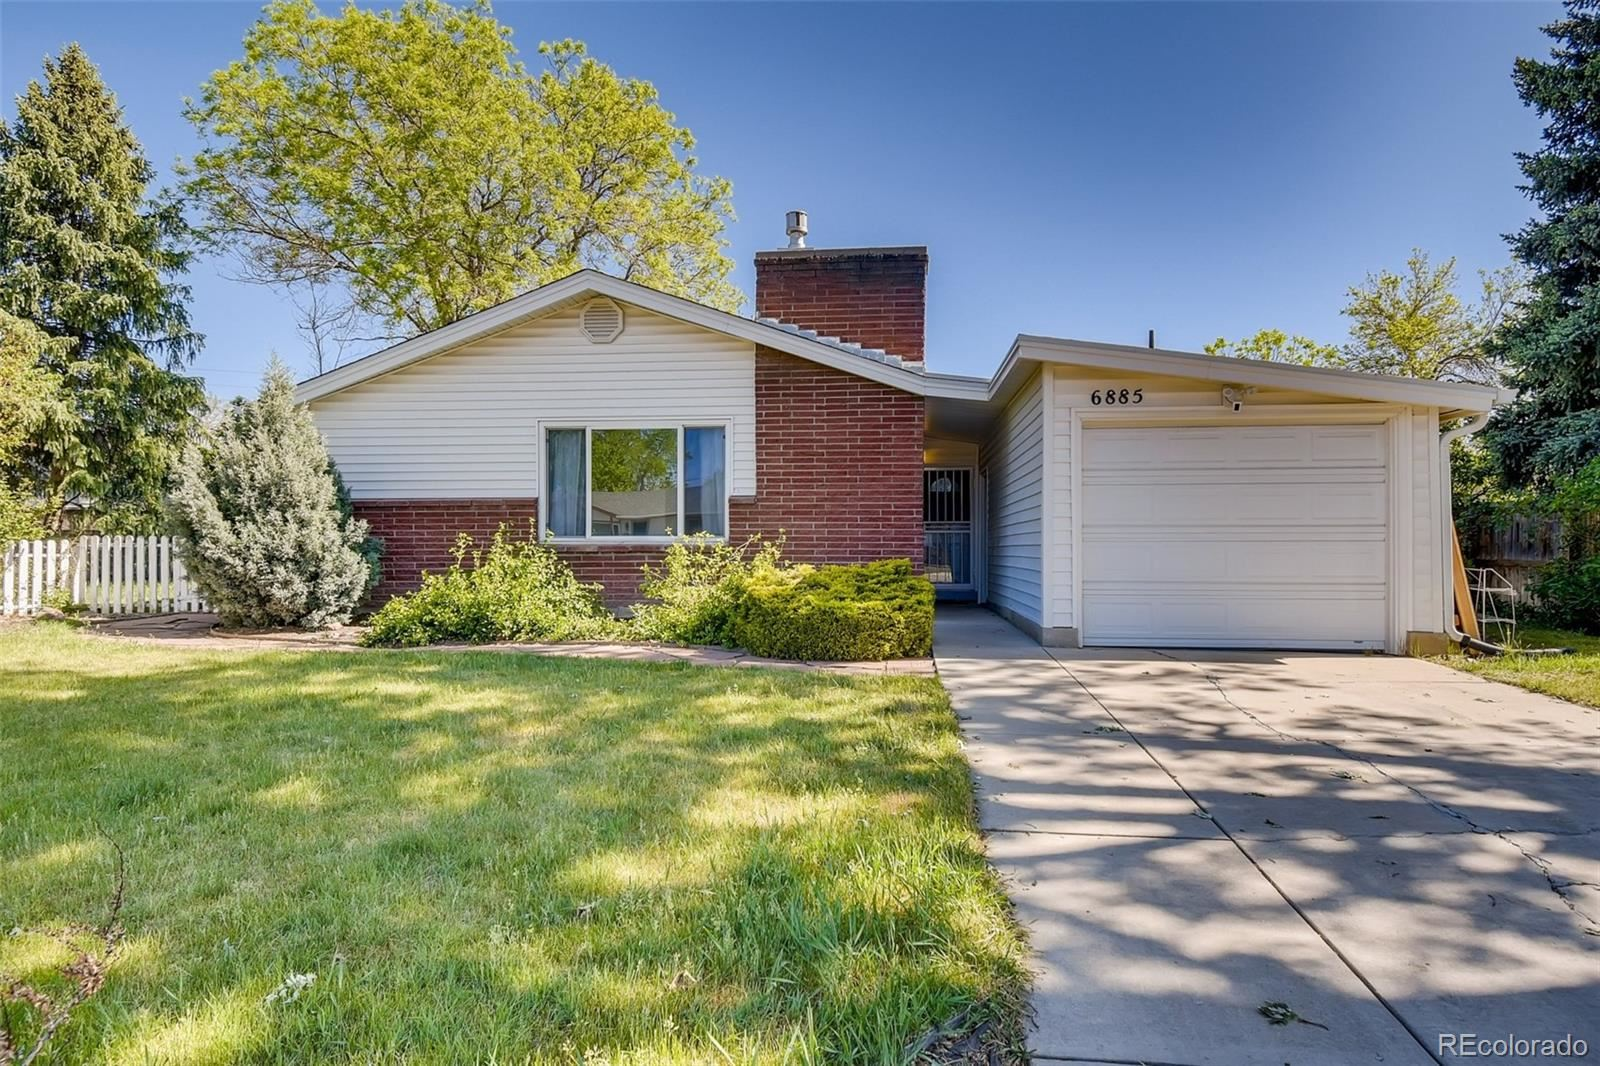 6885 W Airview Avenue, Lakewood, CO 80232 - #: 2792008